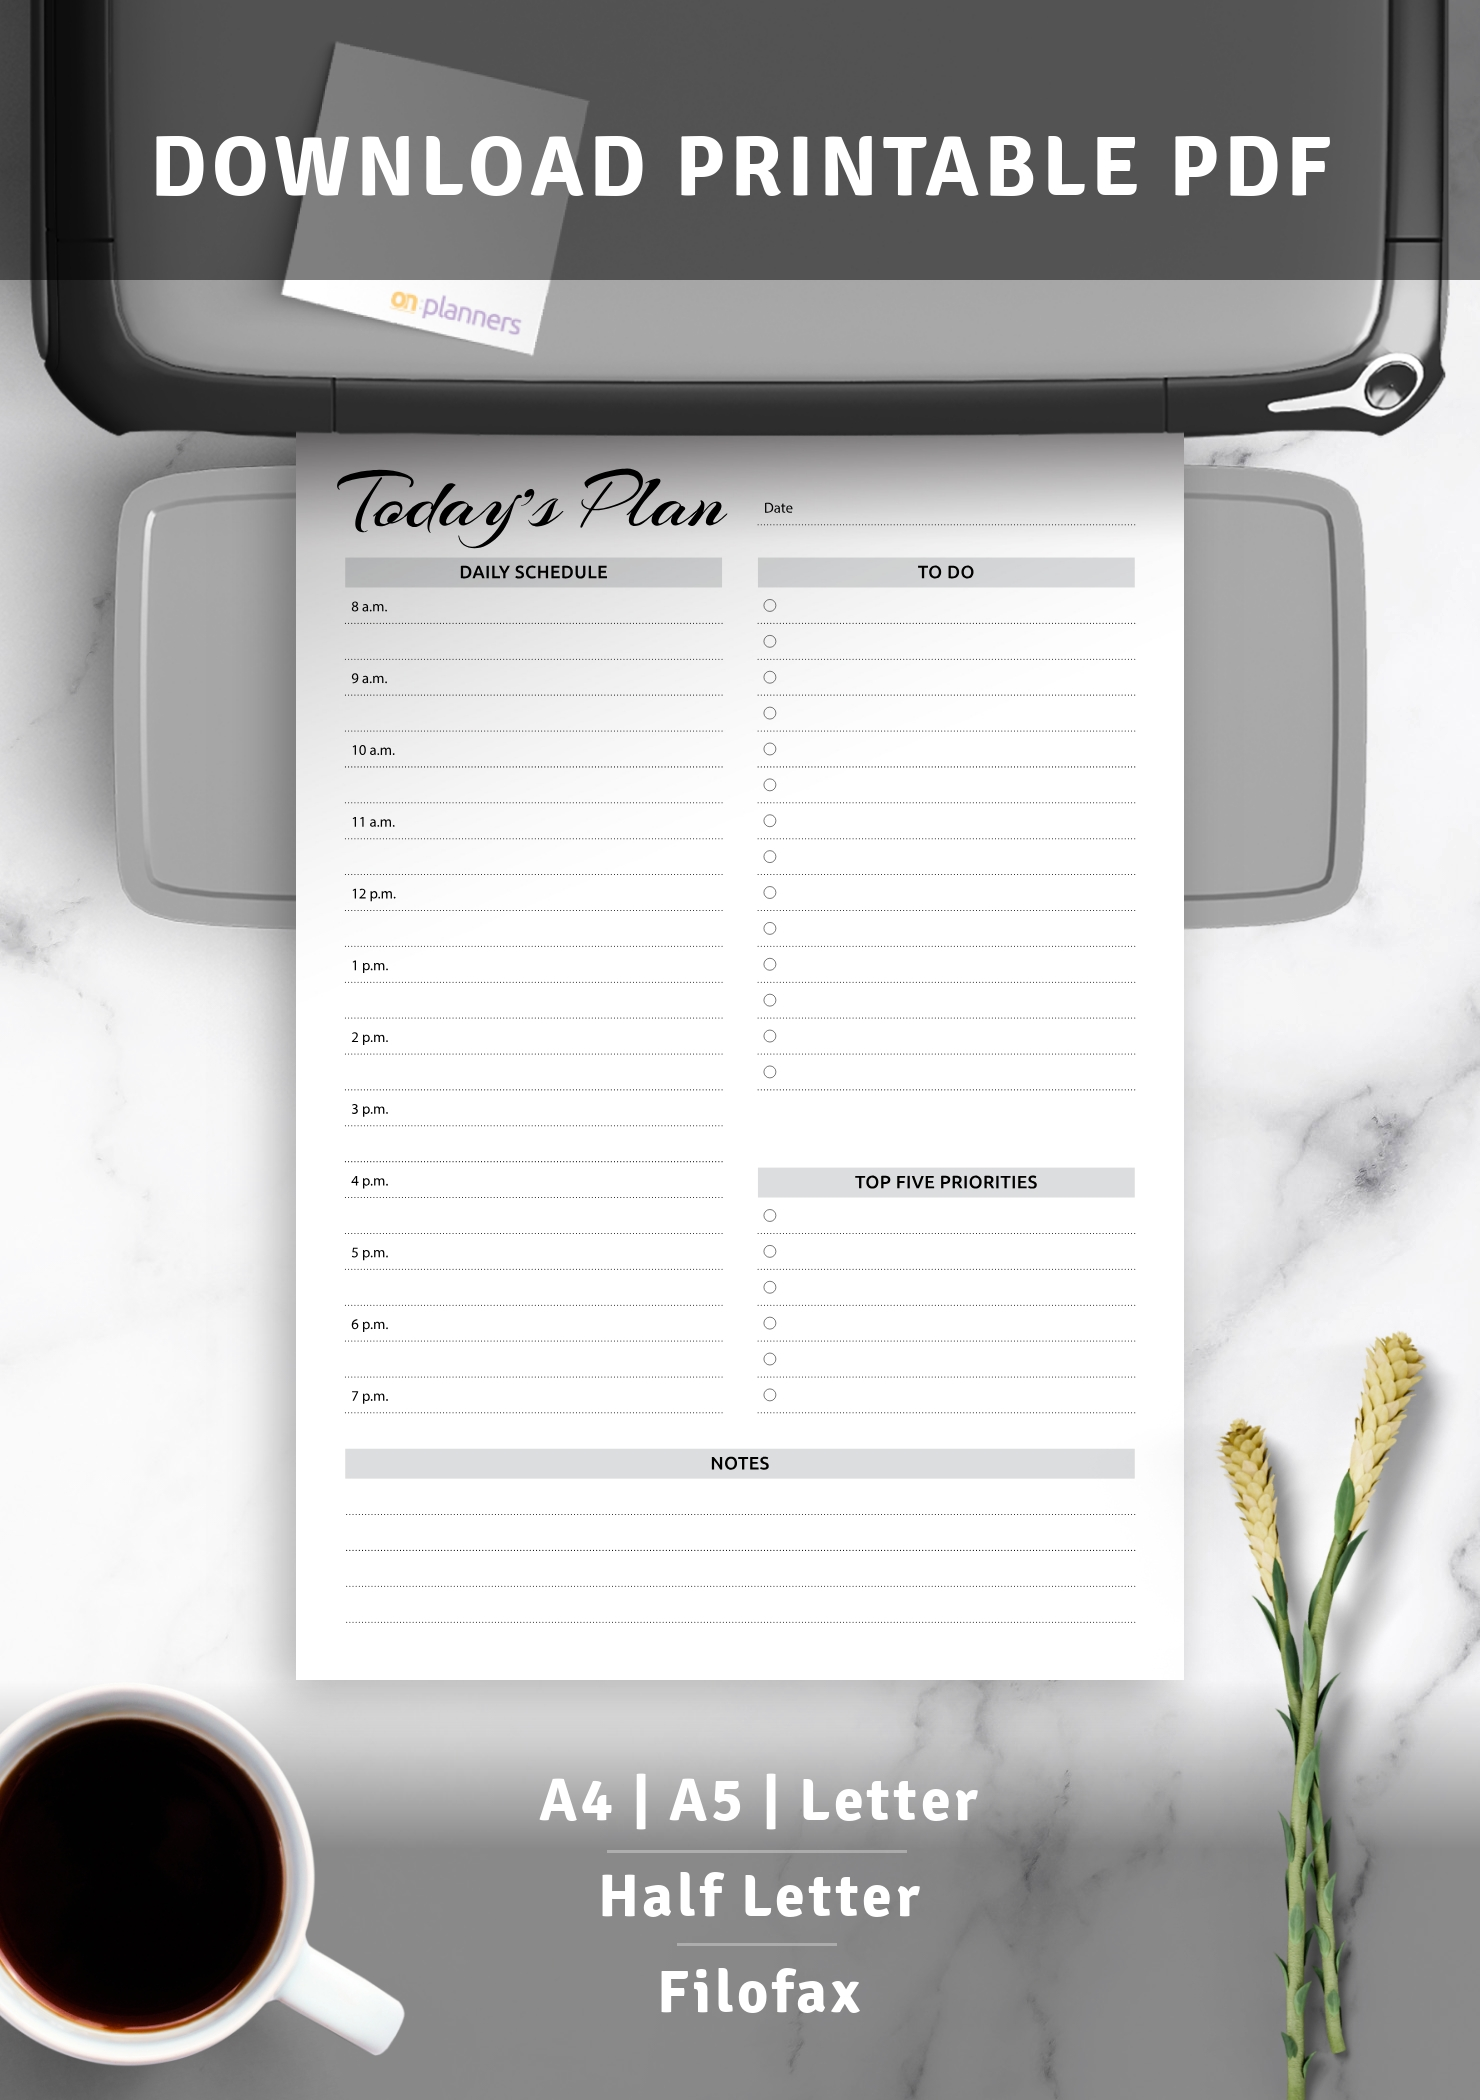 Download Printable Daily Planner With Hourly Schedule & To